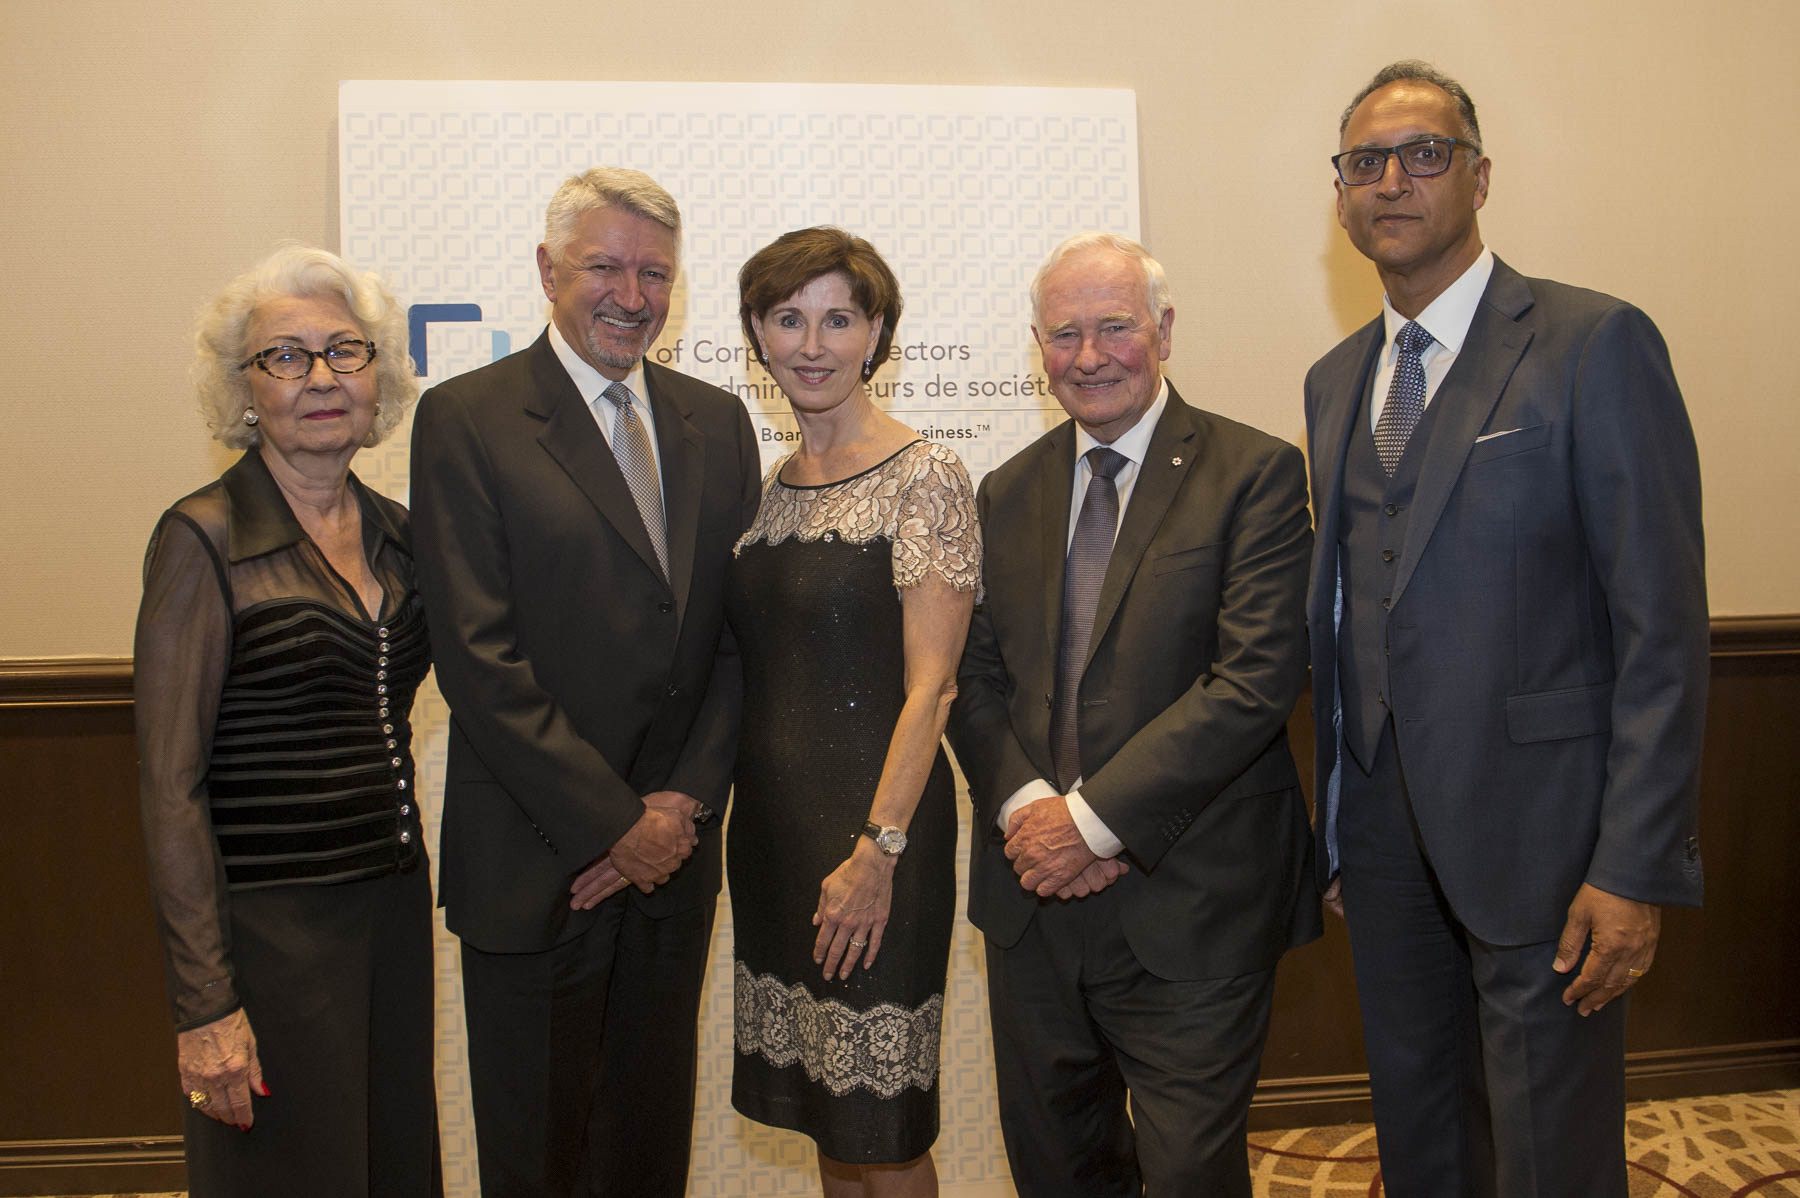 That evening, the Governor General attended the 20th Annual Institute of Corporate Directors (ICD) Fellowship Awards Gala, an event that bring together an esteemed group of directors from across Canada, many of whom sit on the boards of some of the country's biggest corporations. His Excellency is pictured here with the 2017 Fellows (to his right) and Rahul Bhardwaj, President and CEO of ICD (to his left).